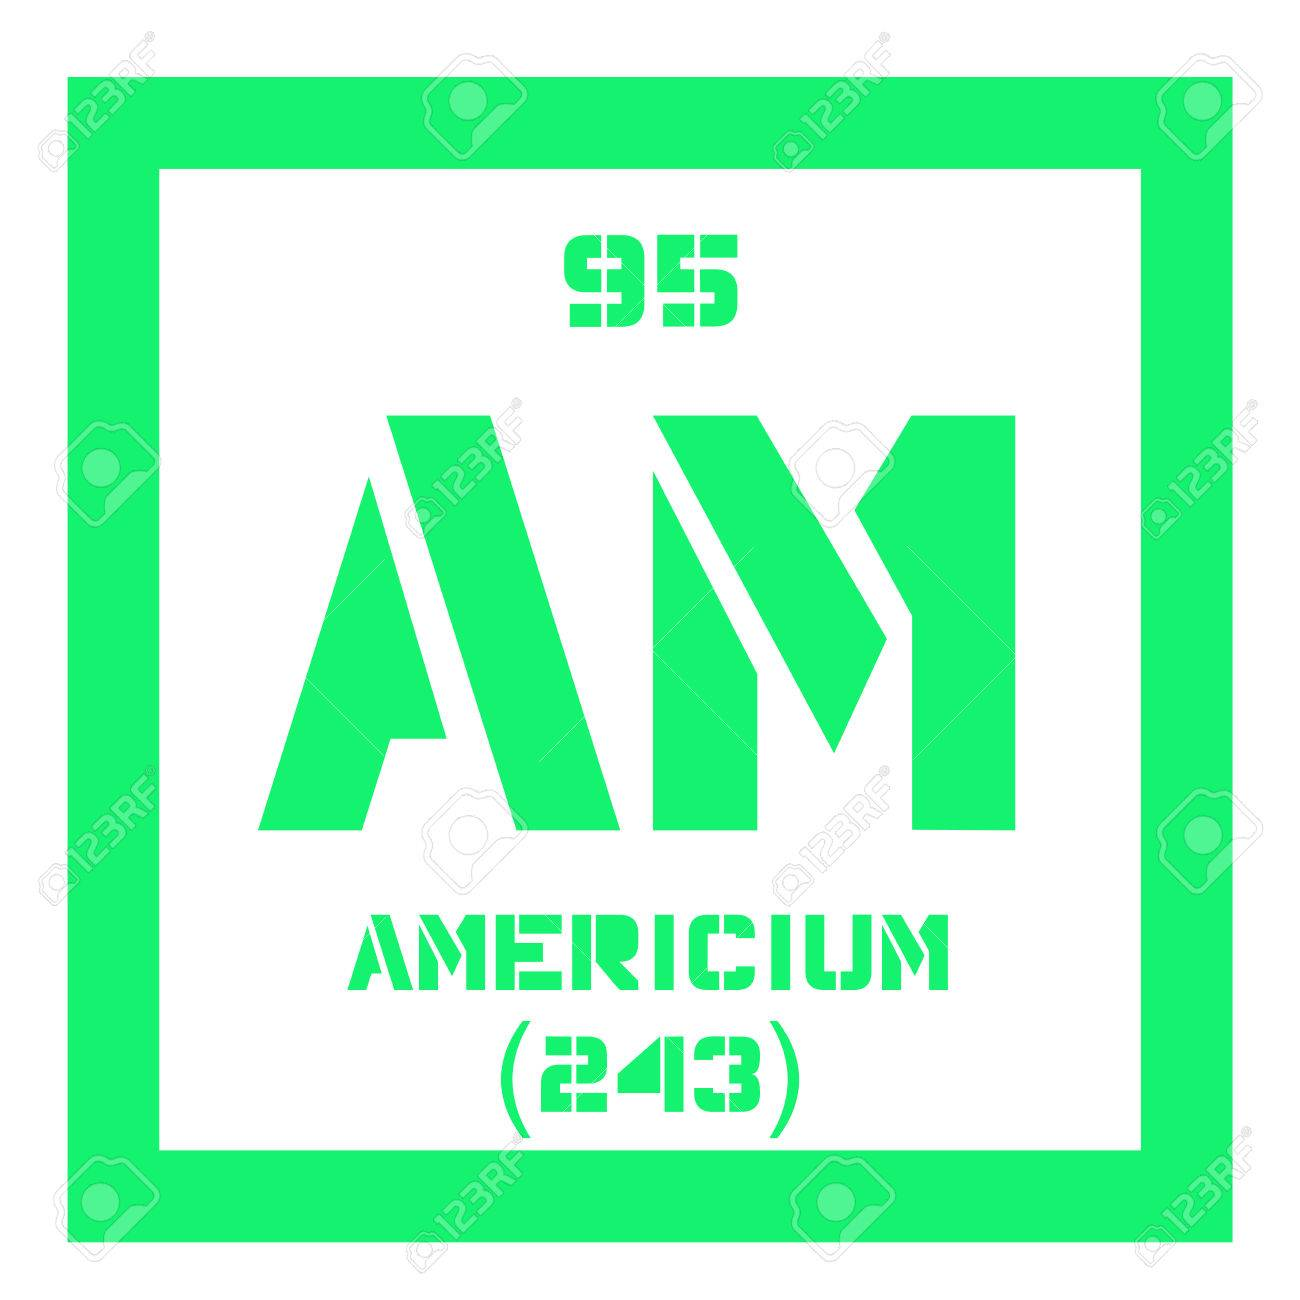 Americium chemical element radioactive transuranic chemical americium chemical element radioactive transuranic chemical element colored icon with atomic number and atomic urtaz Image collections